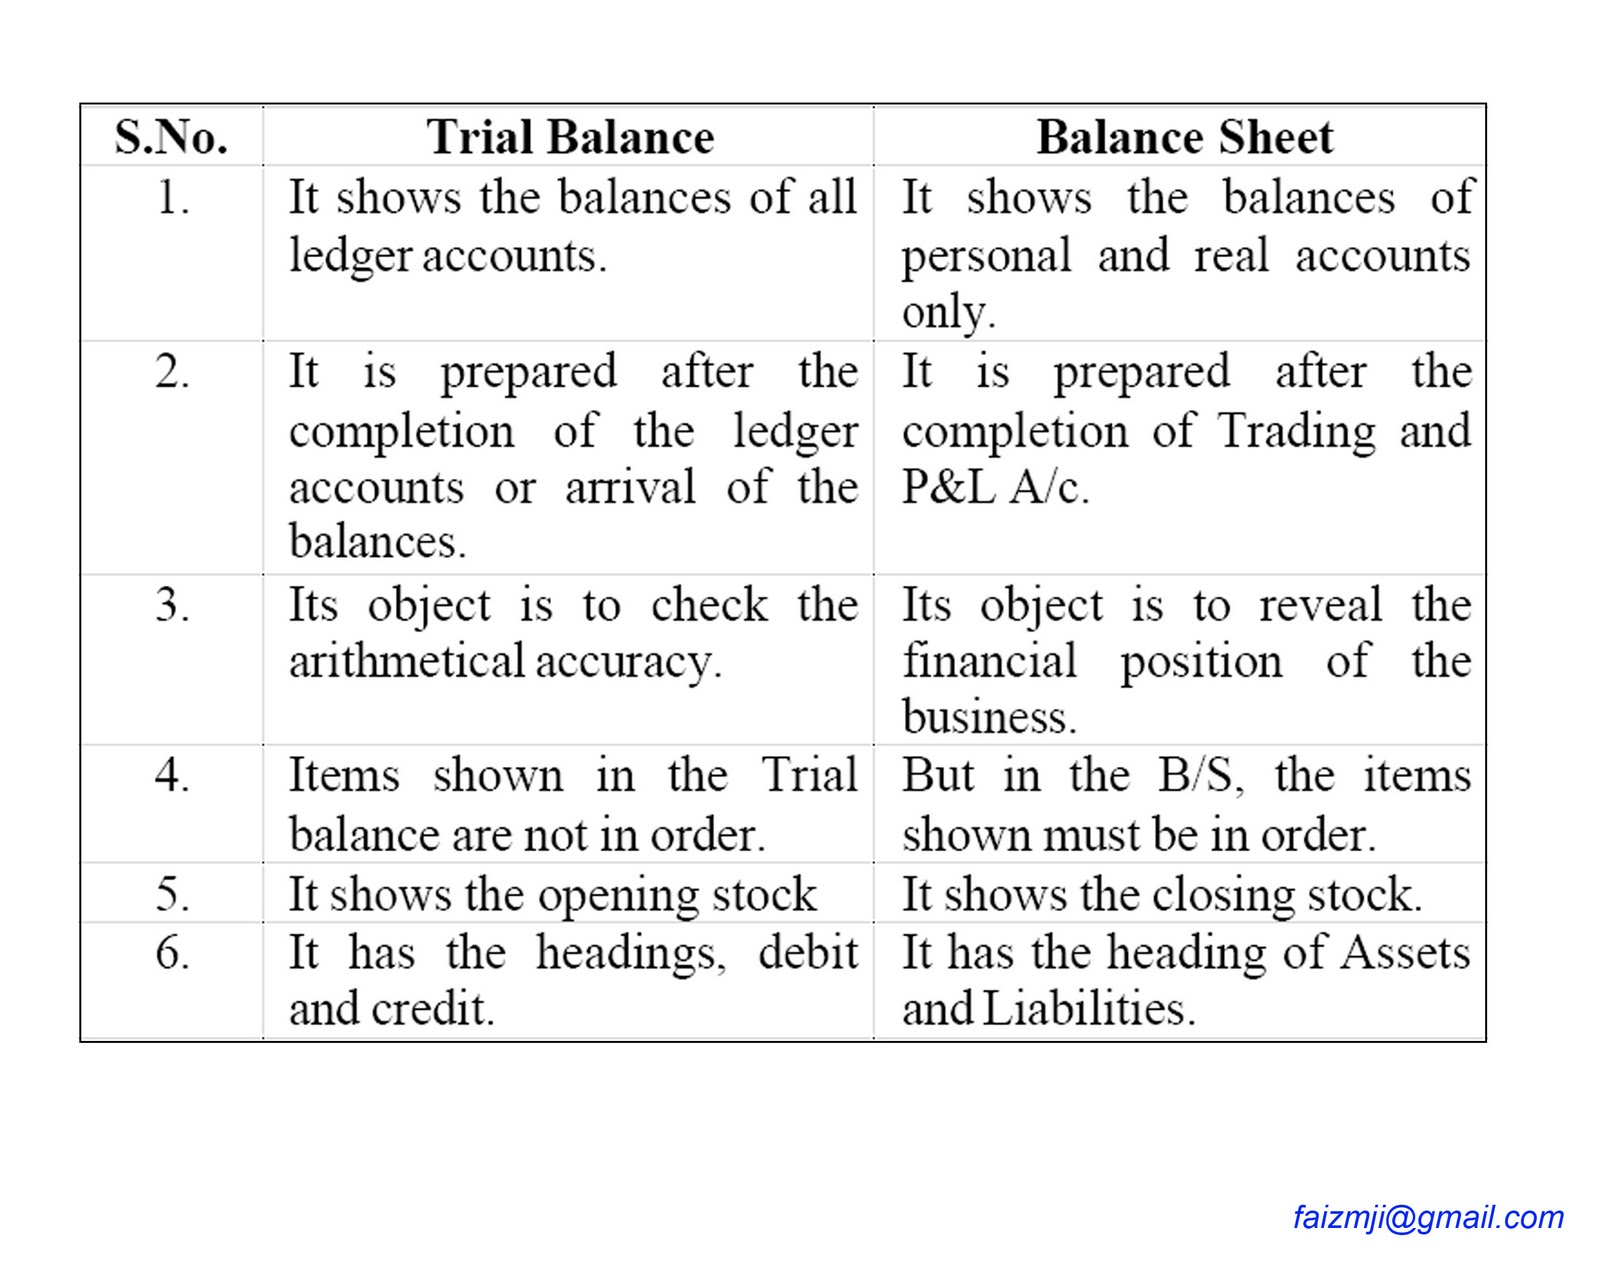 the difference between balance sheet and The differences between bank balance sheet vs company balance sheet are as follows – balance sheet of bank is quite different than balance sheet of a regular company in the approach of preparation both are prepared quite differently.